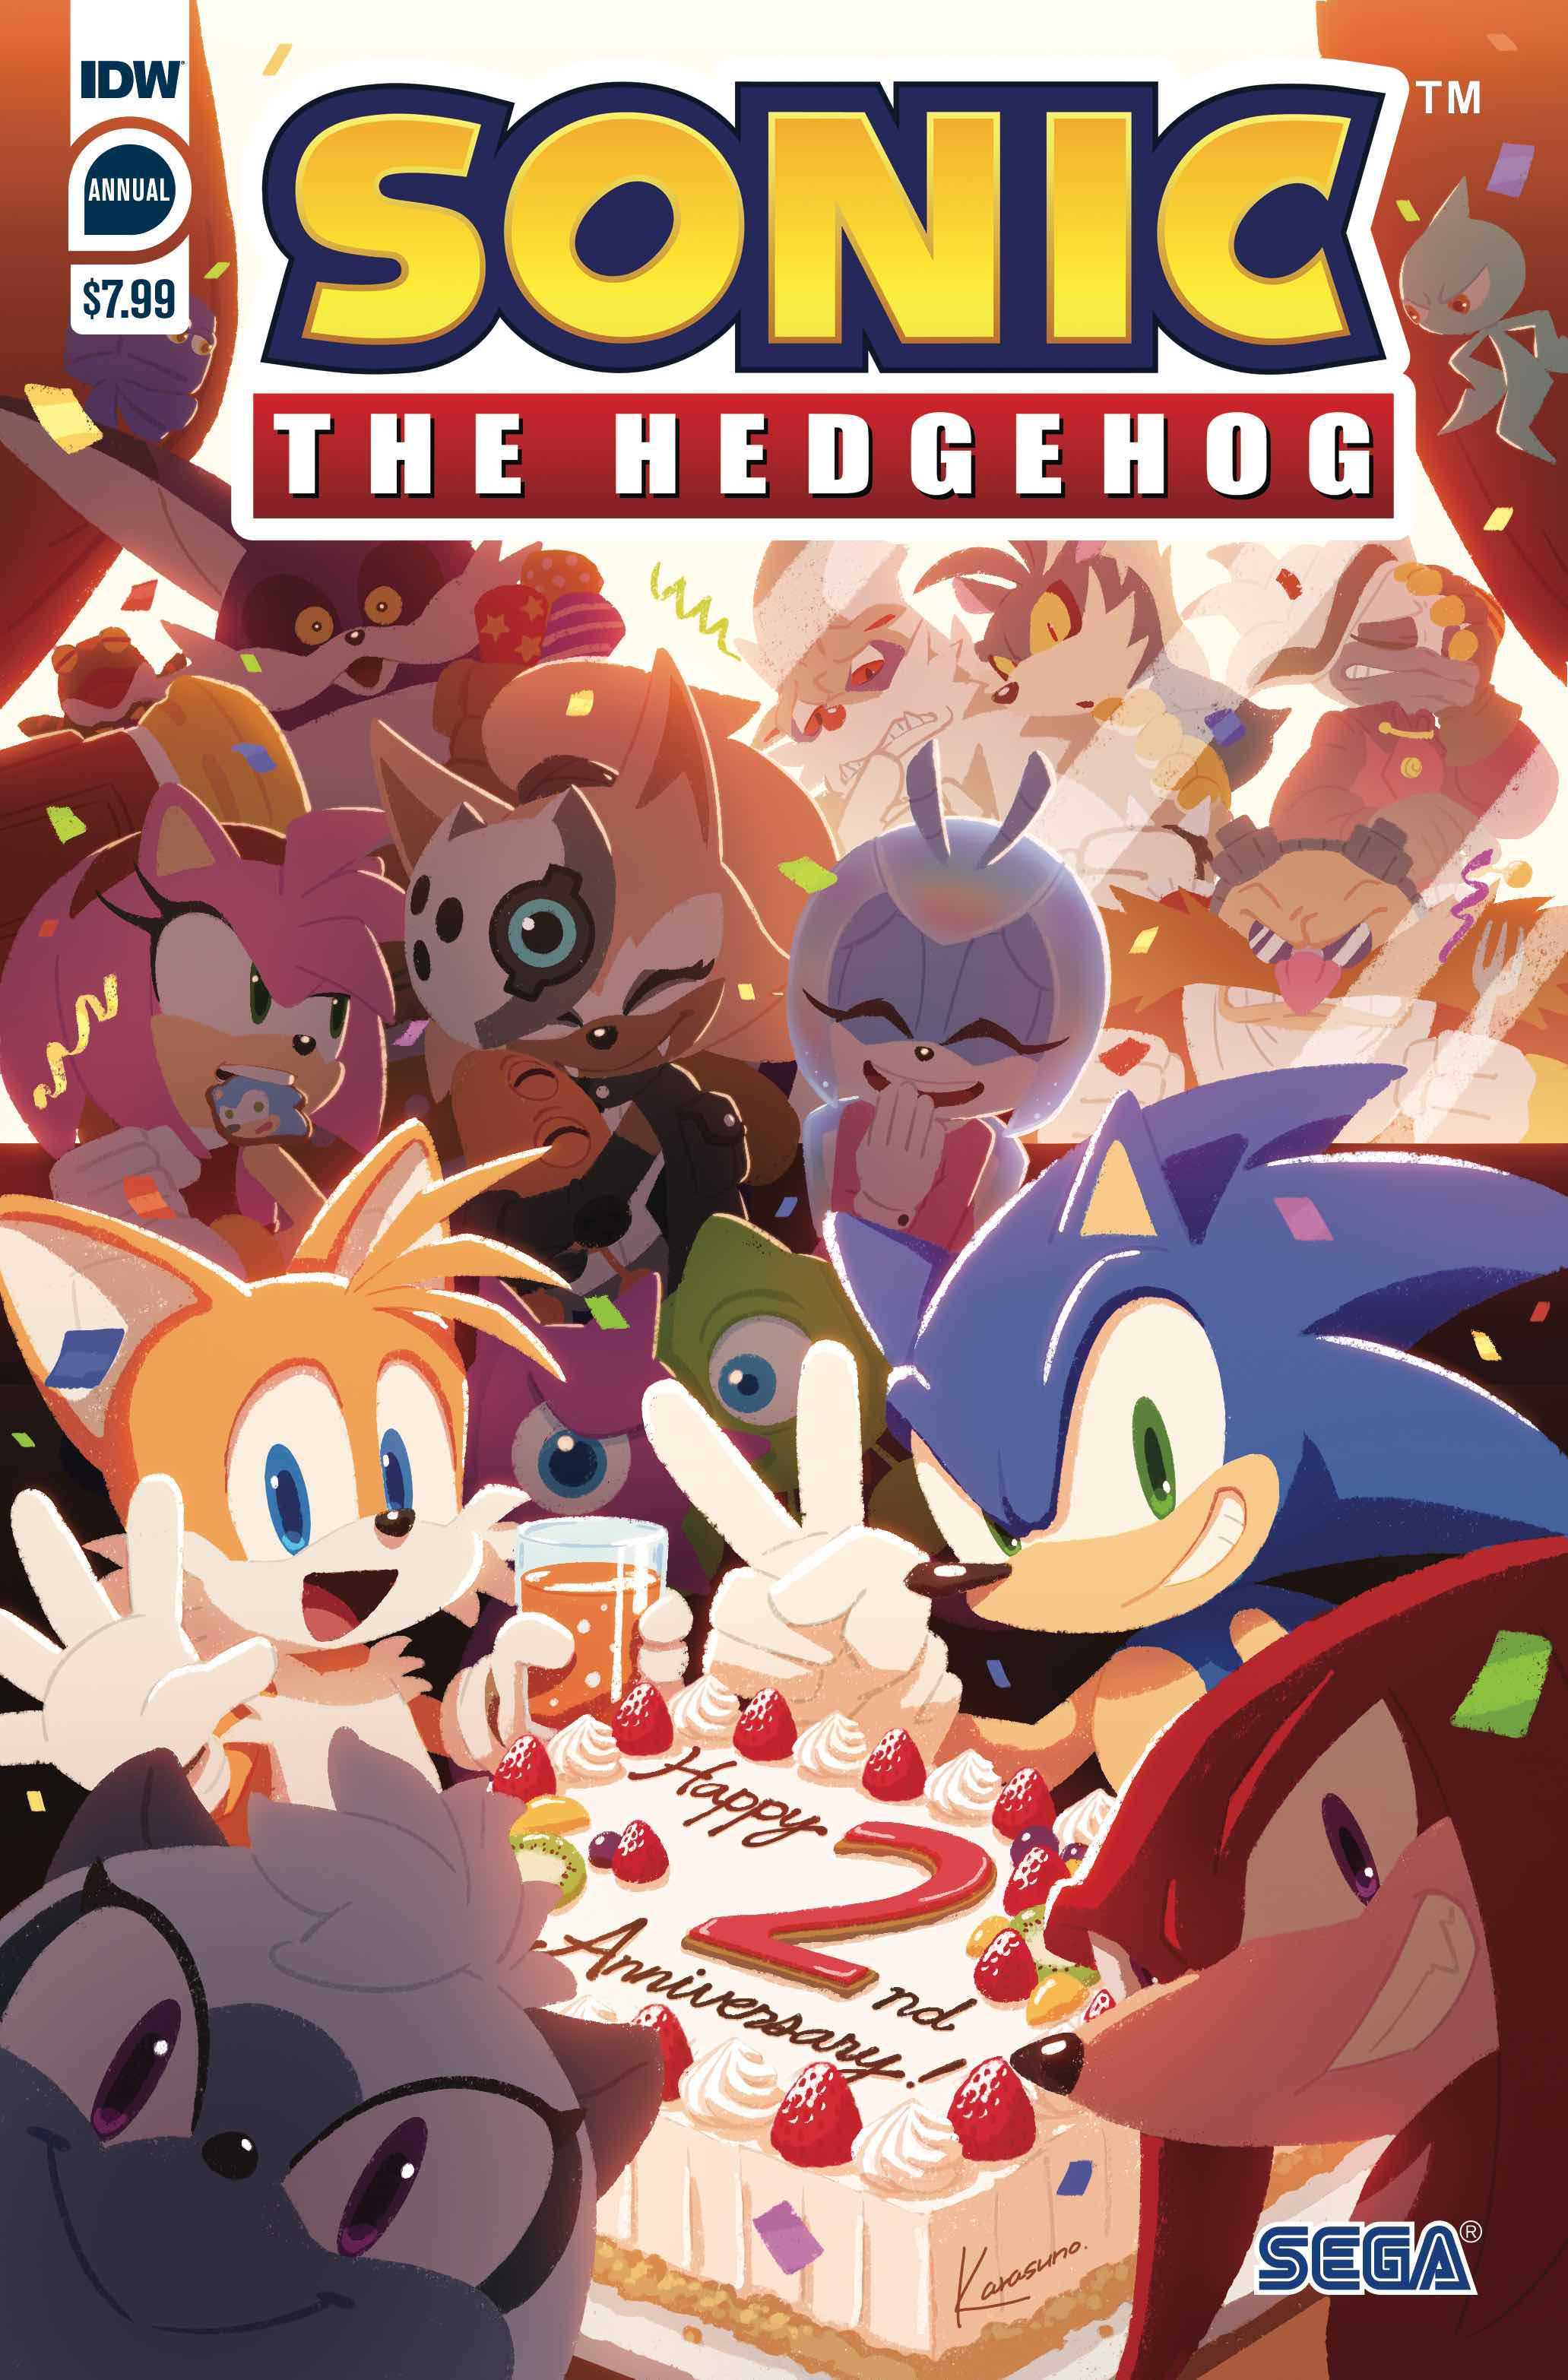 Cover by Karasuno (Sonic Team)